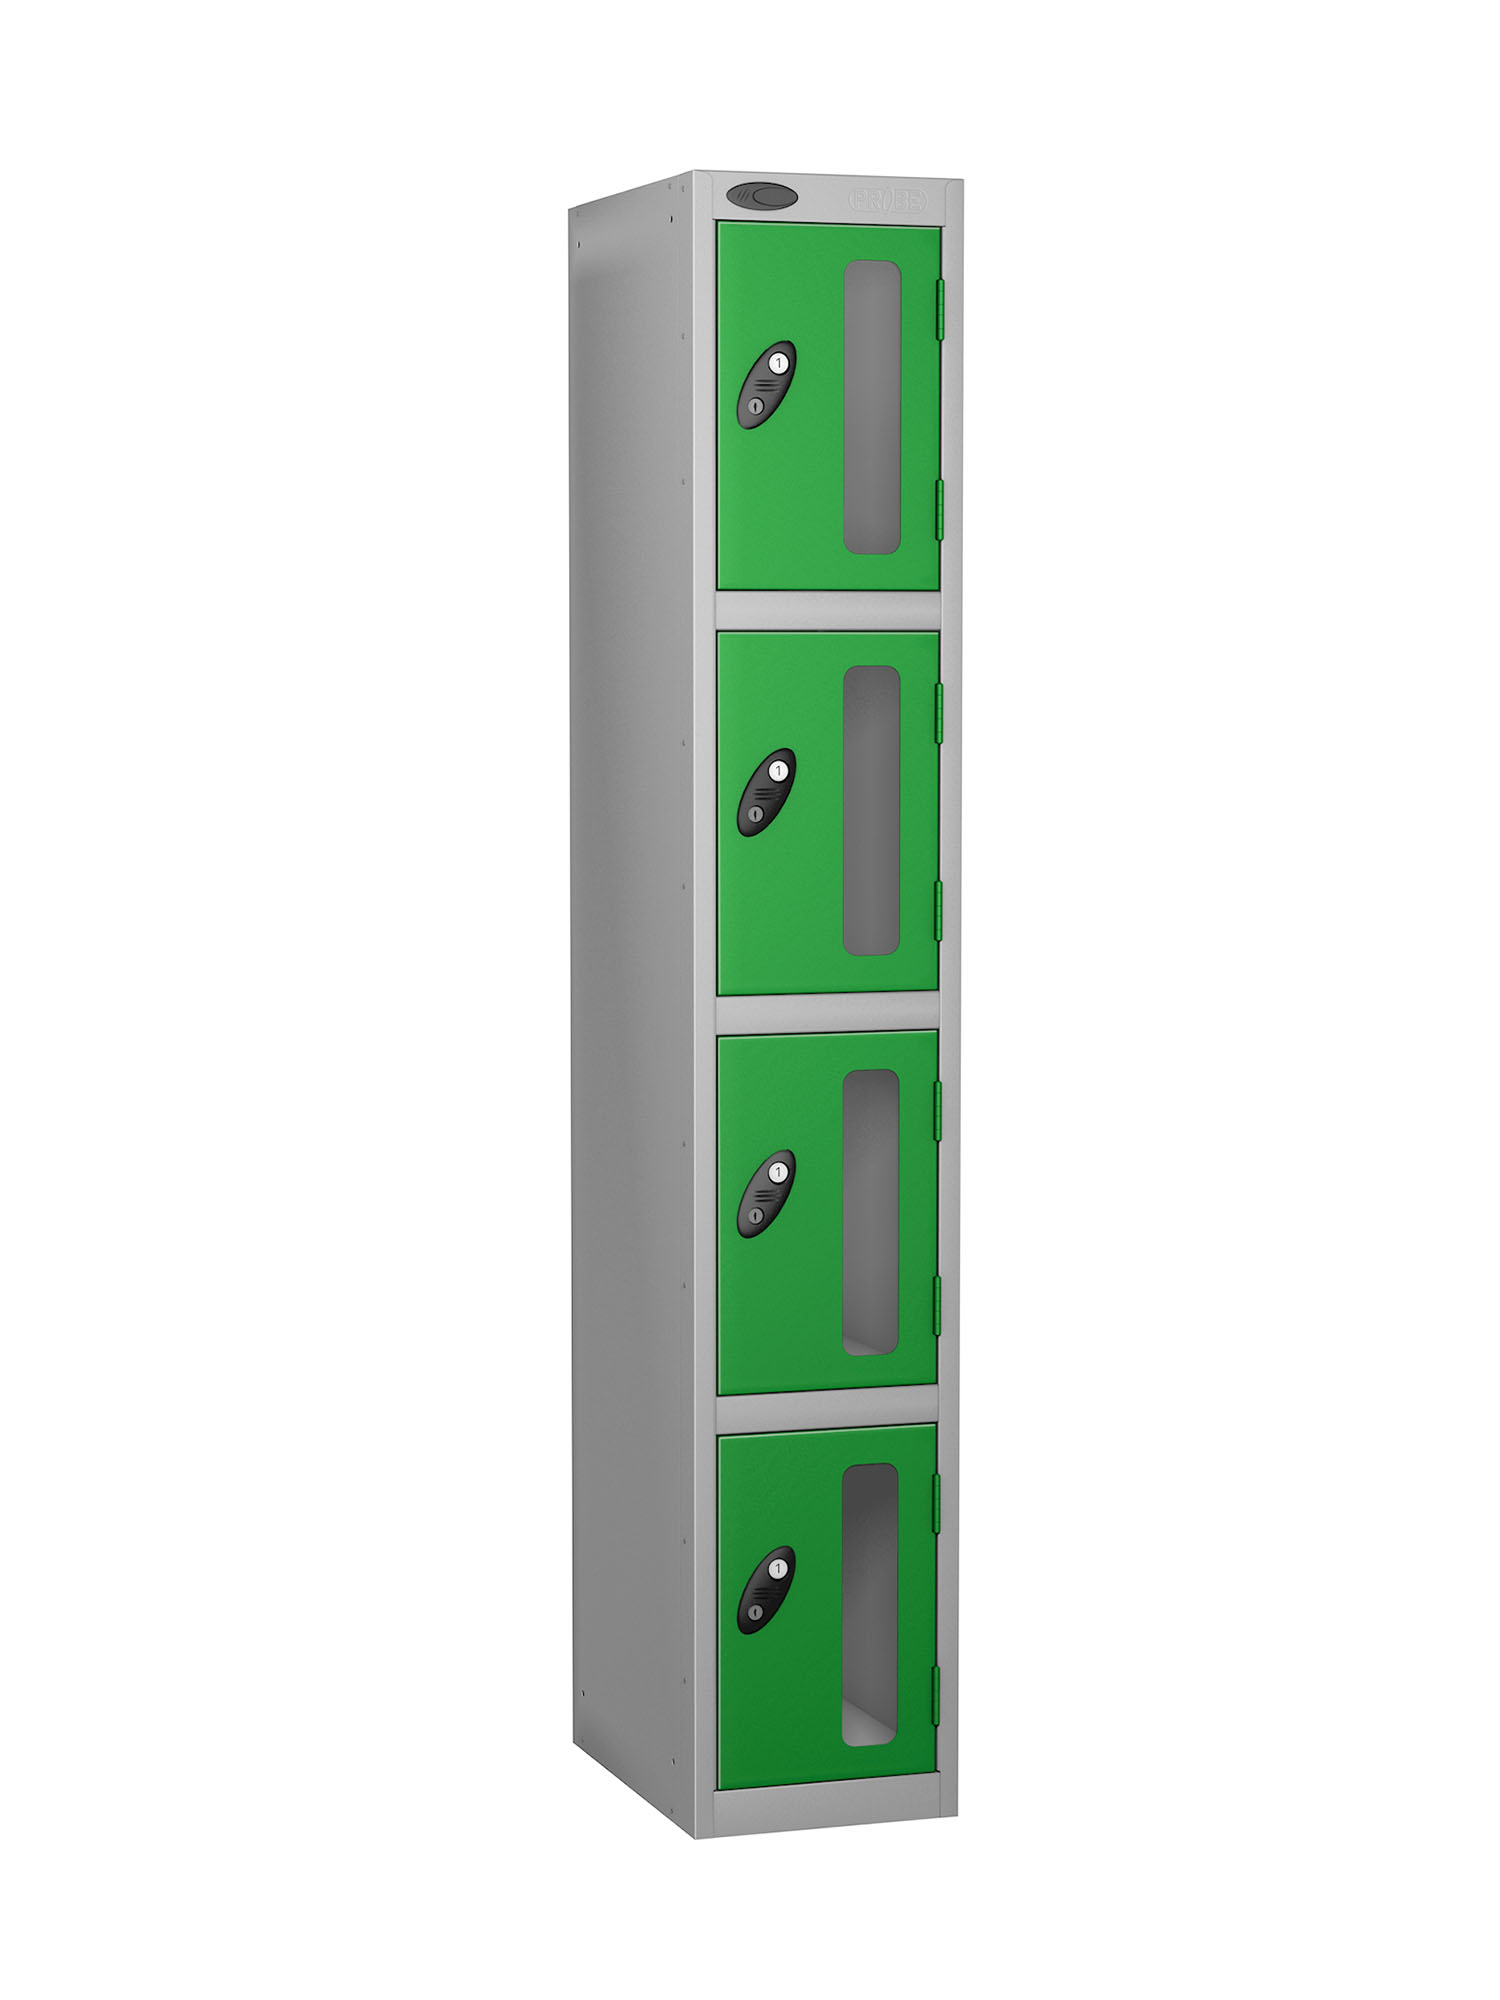 Probe 4 doors vision panel anti-stock theft locker green